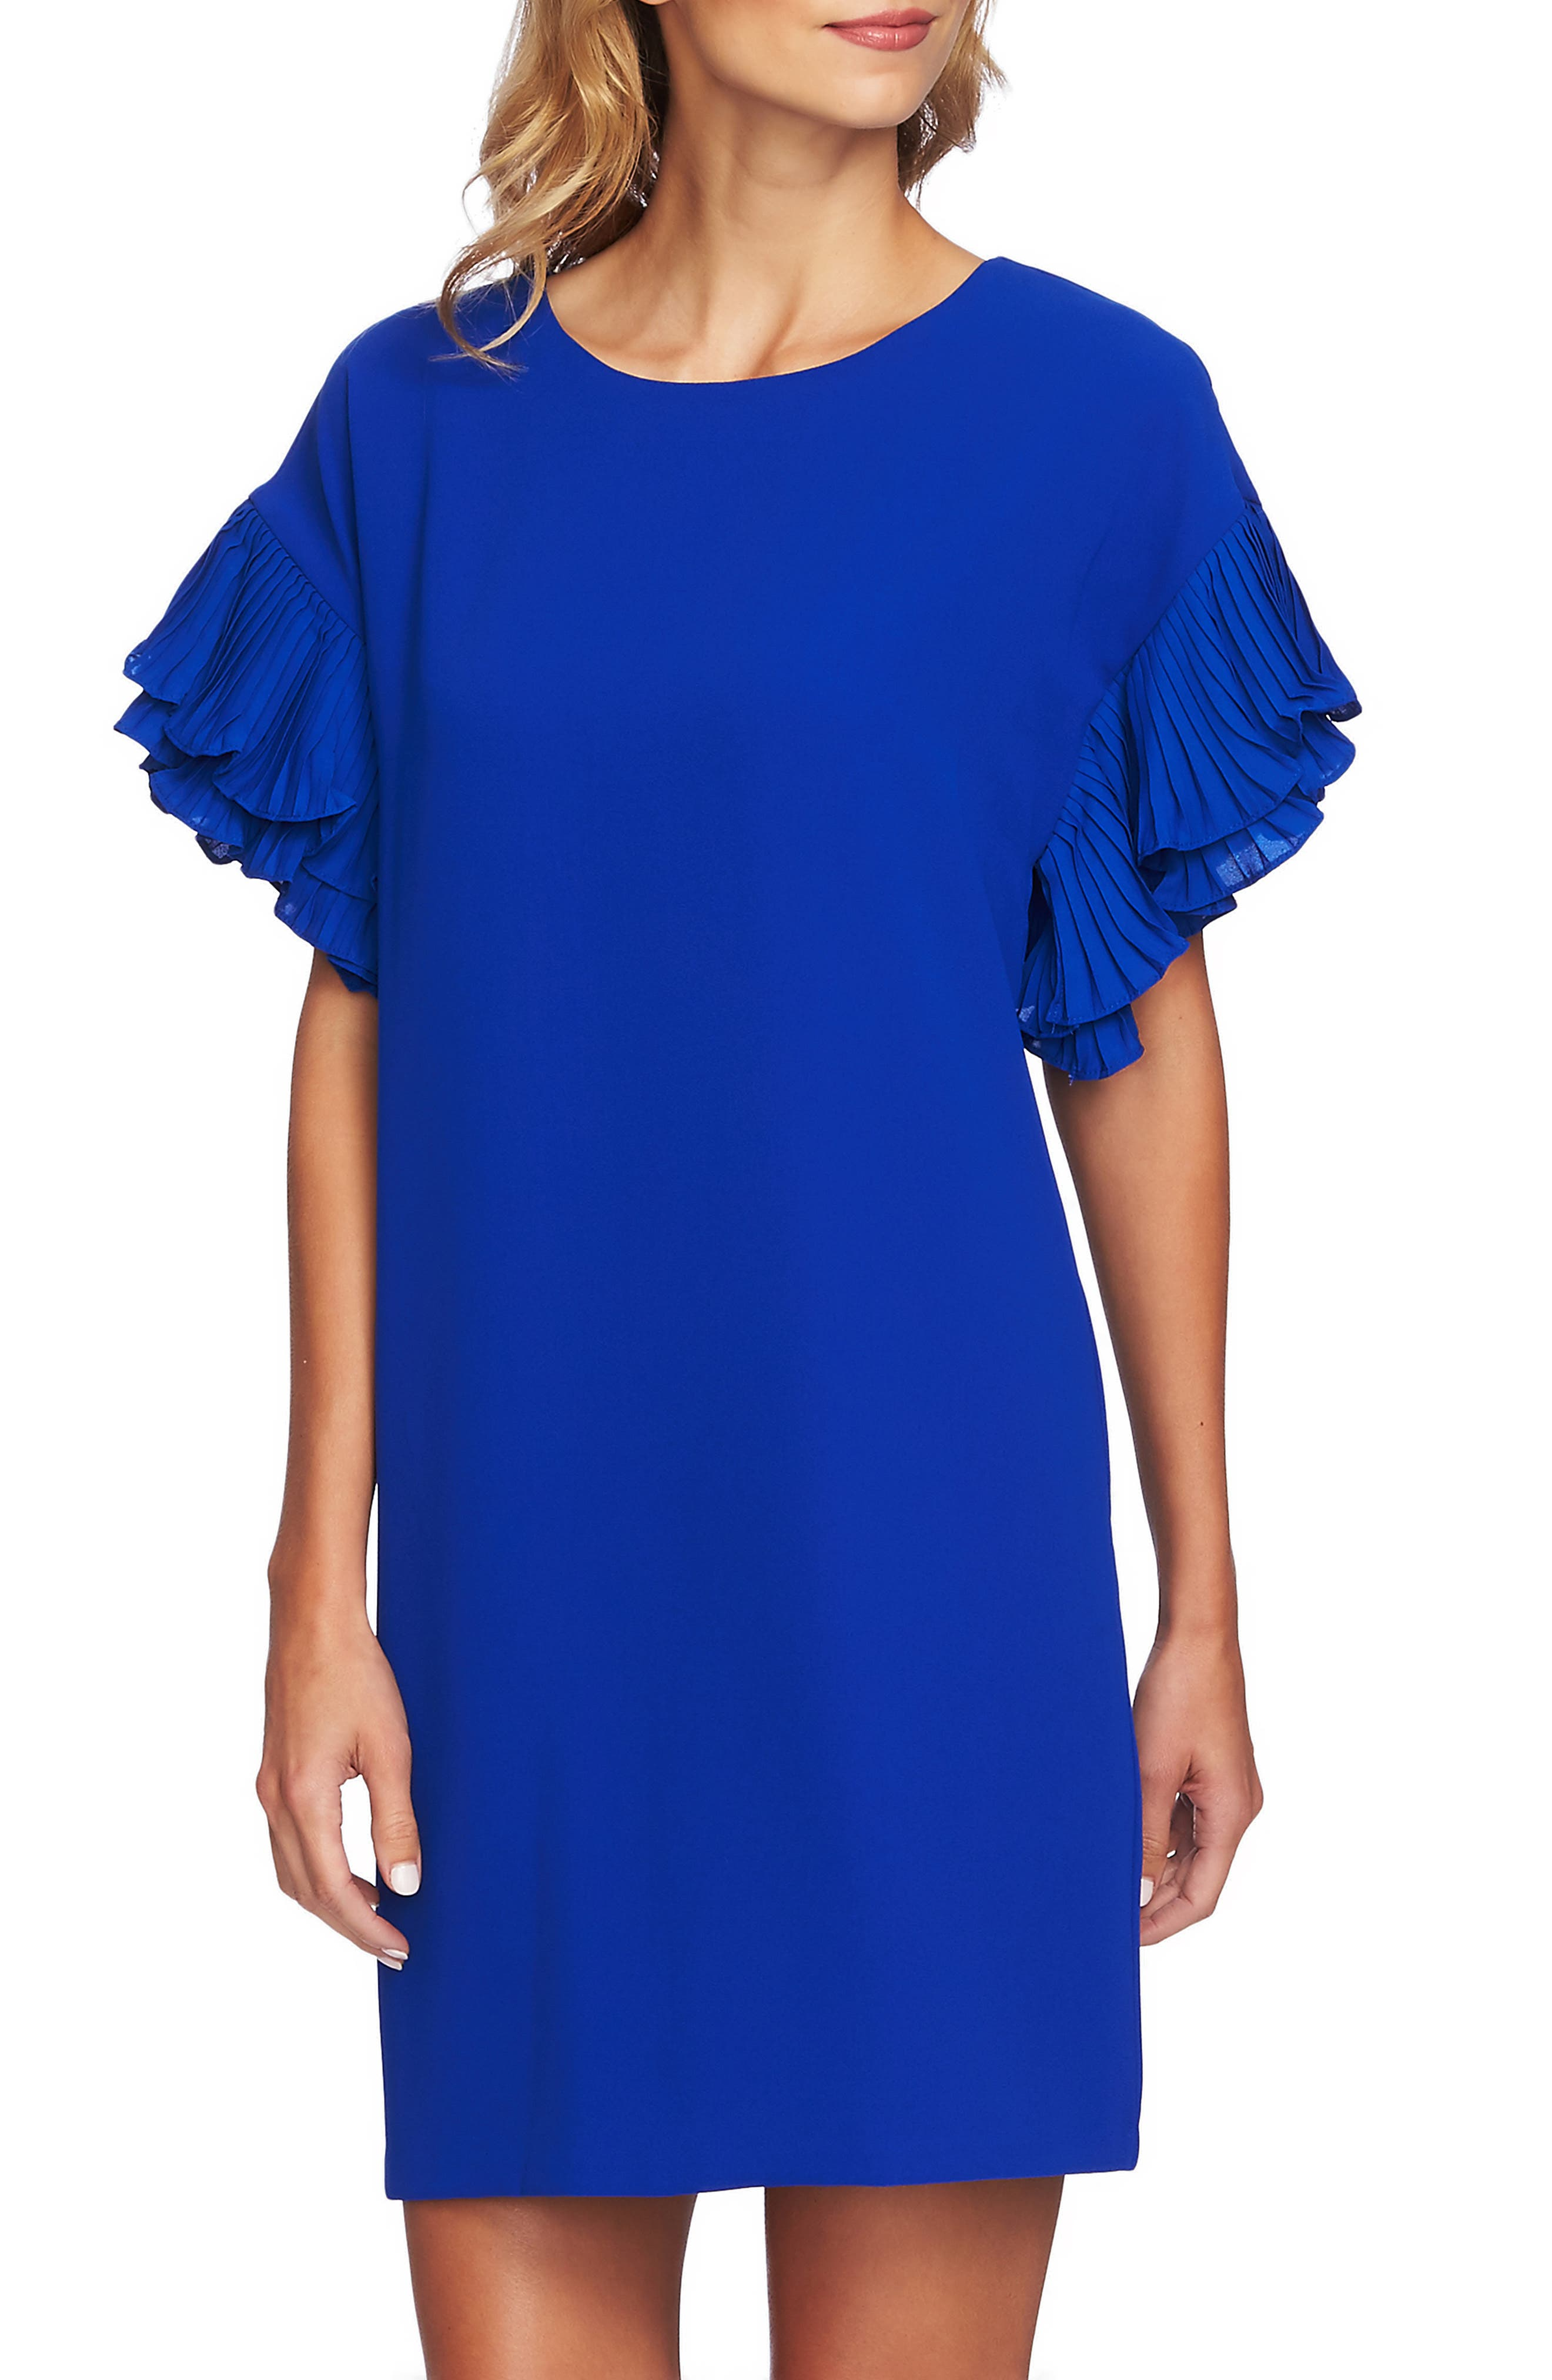 Tiered Pleated Crepe Shift Dress,                             Alternate thumbnail 4, color,                             COBALT